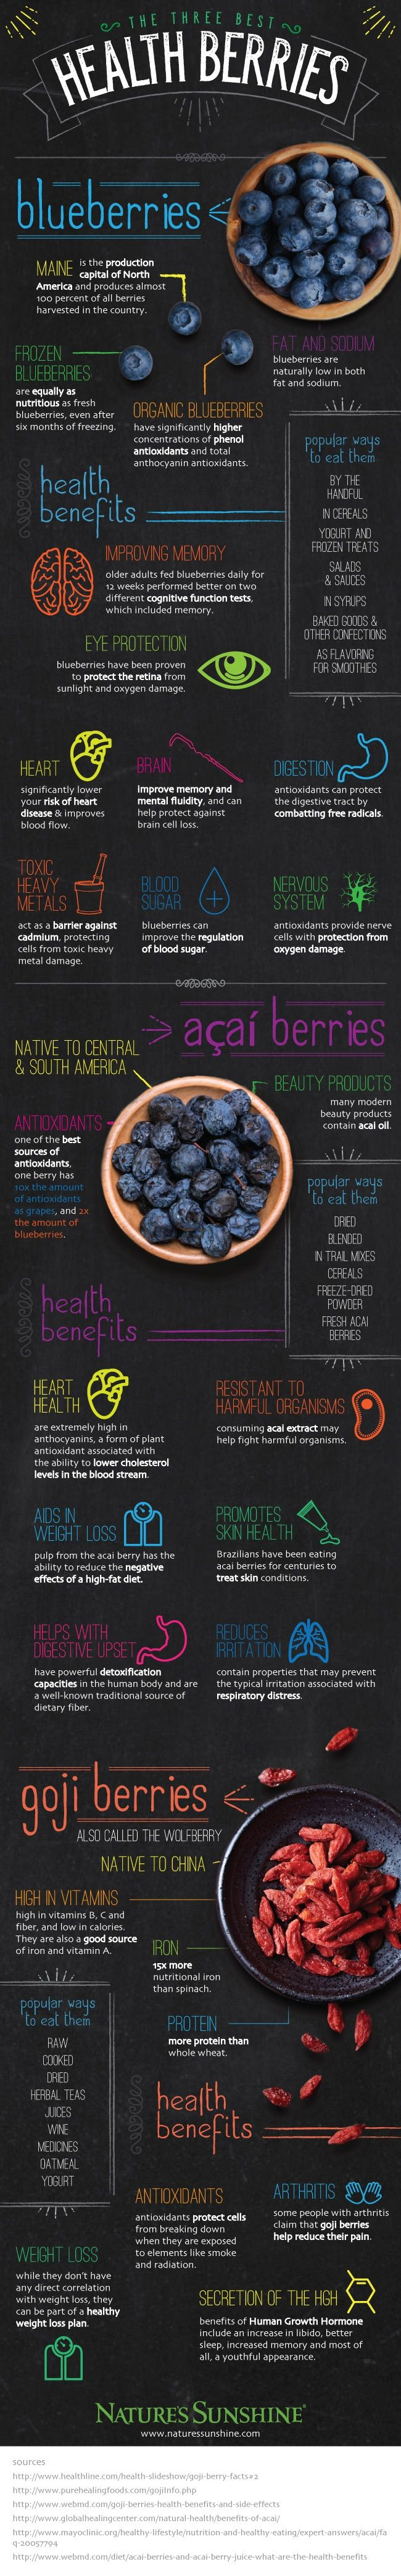 The Three Best Health Berries: There are many benefits to eating blueberries, acai berries, and goji berries (also called wolfberry).